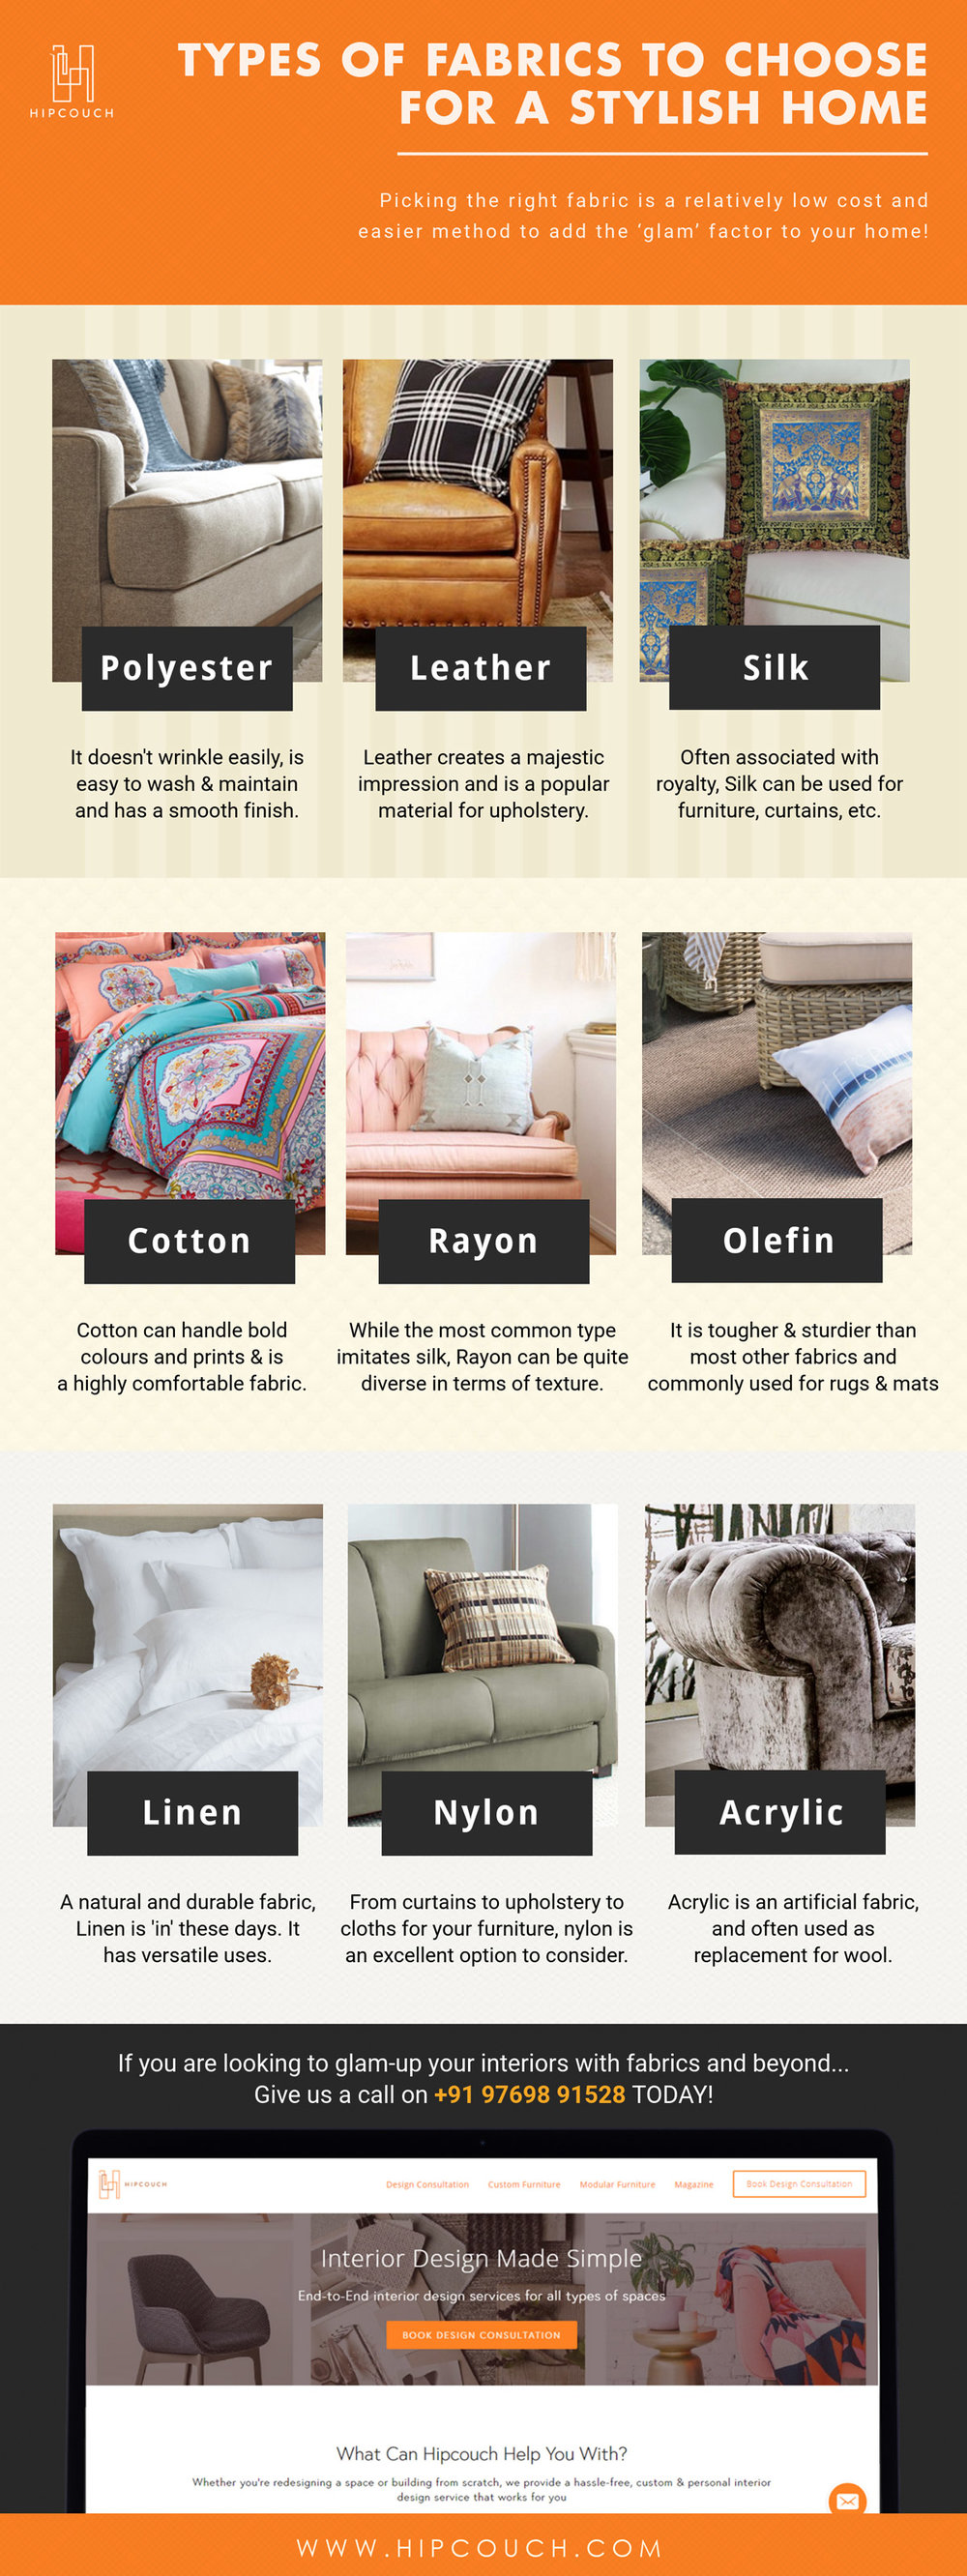 Types-of-Fabrics-to-Choose-For-Galm-Interiors.jpg